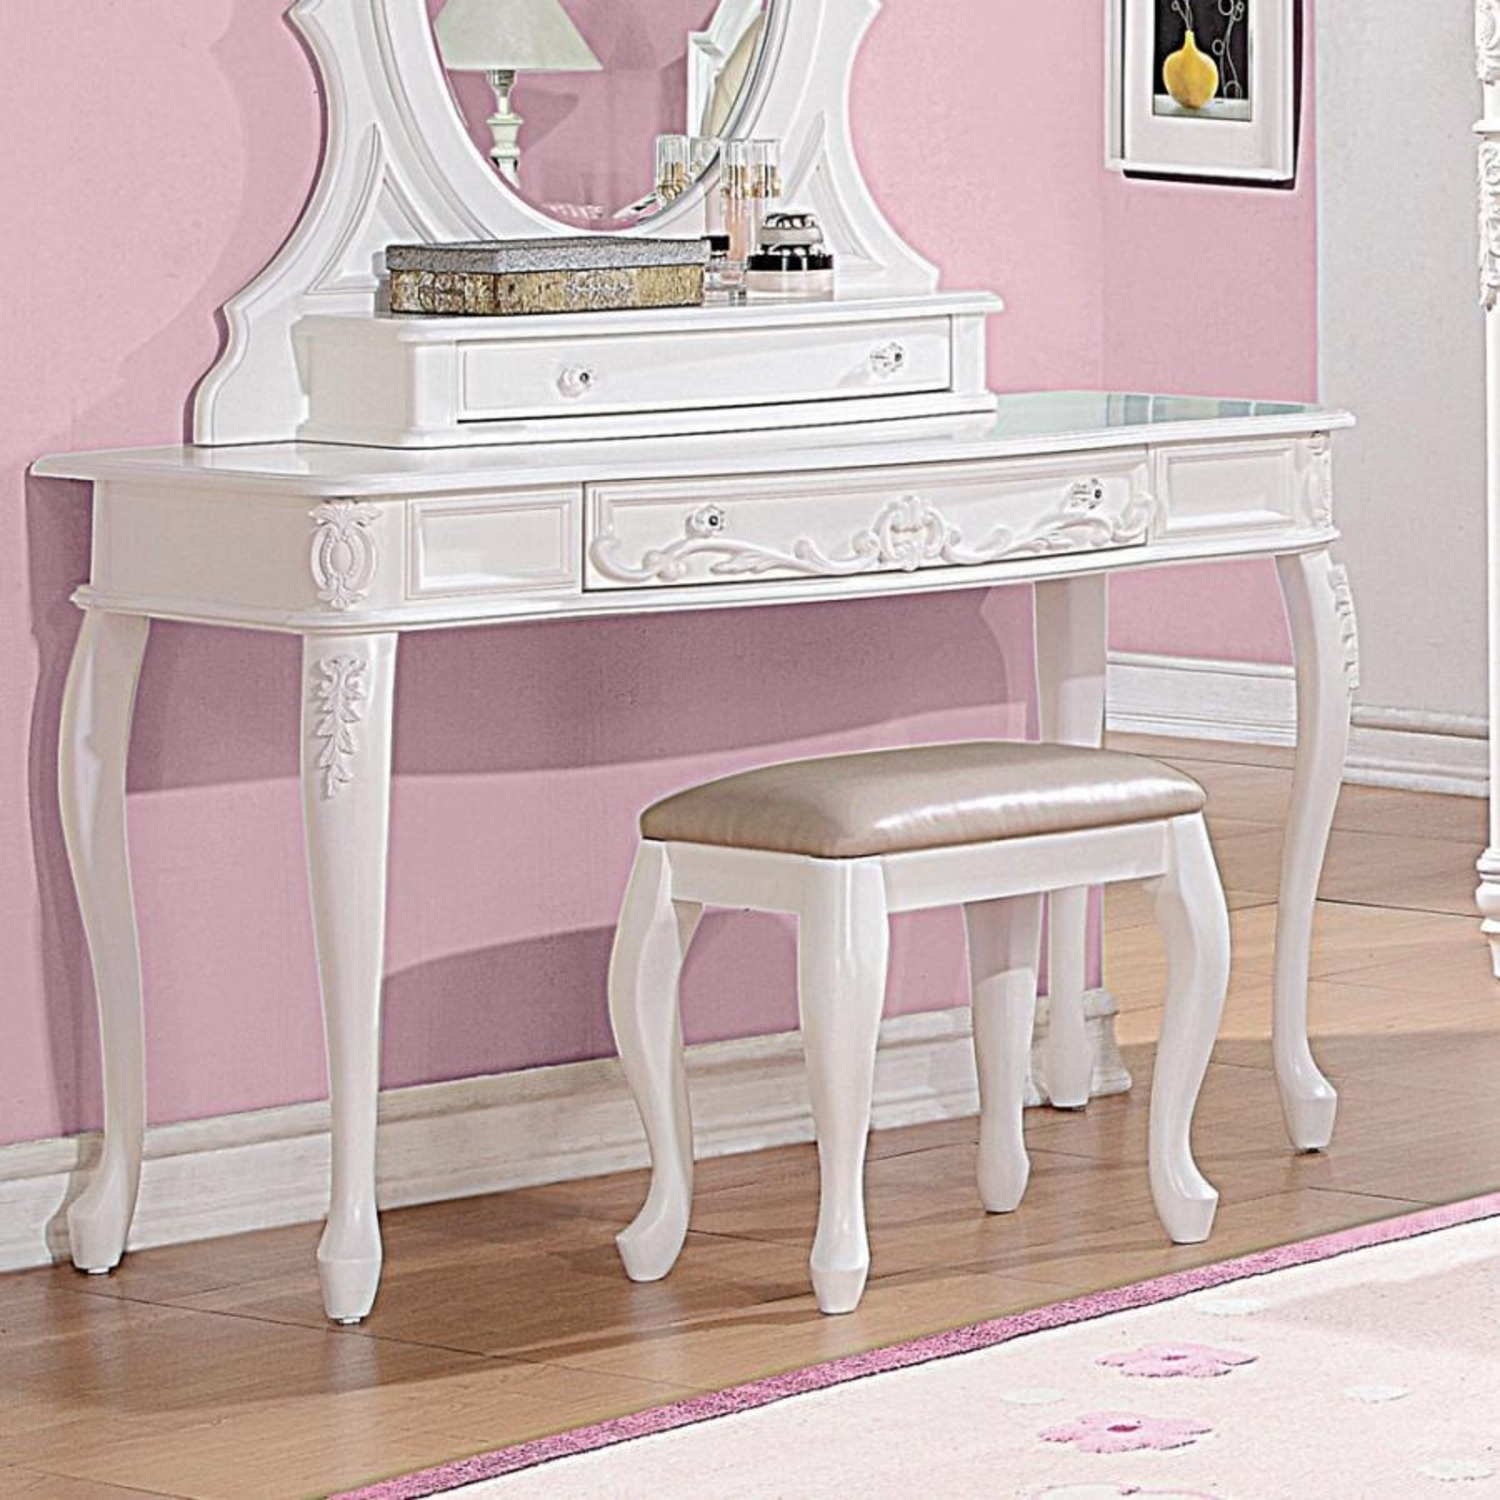 Vanity Desk In White Finish W/ Elegant Details - image-1